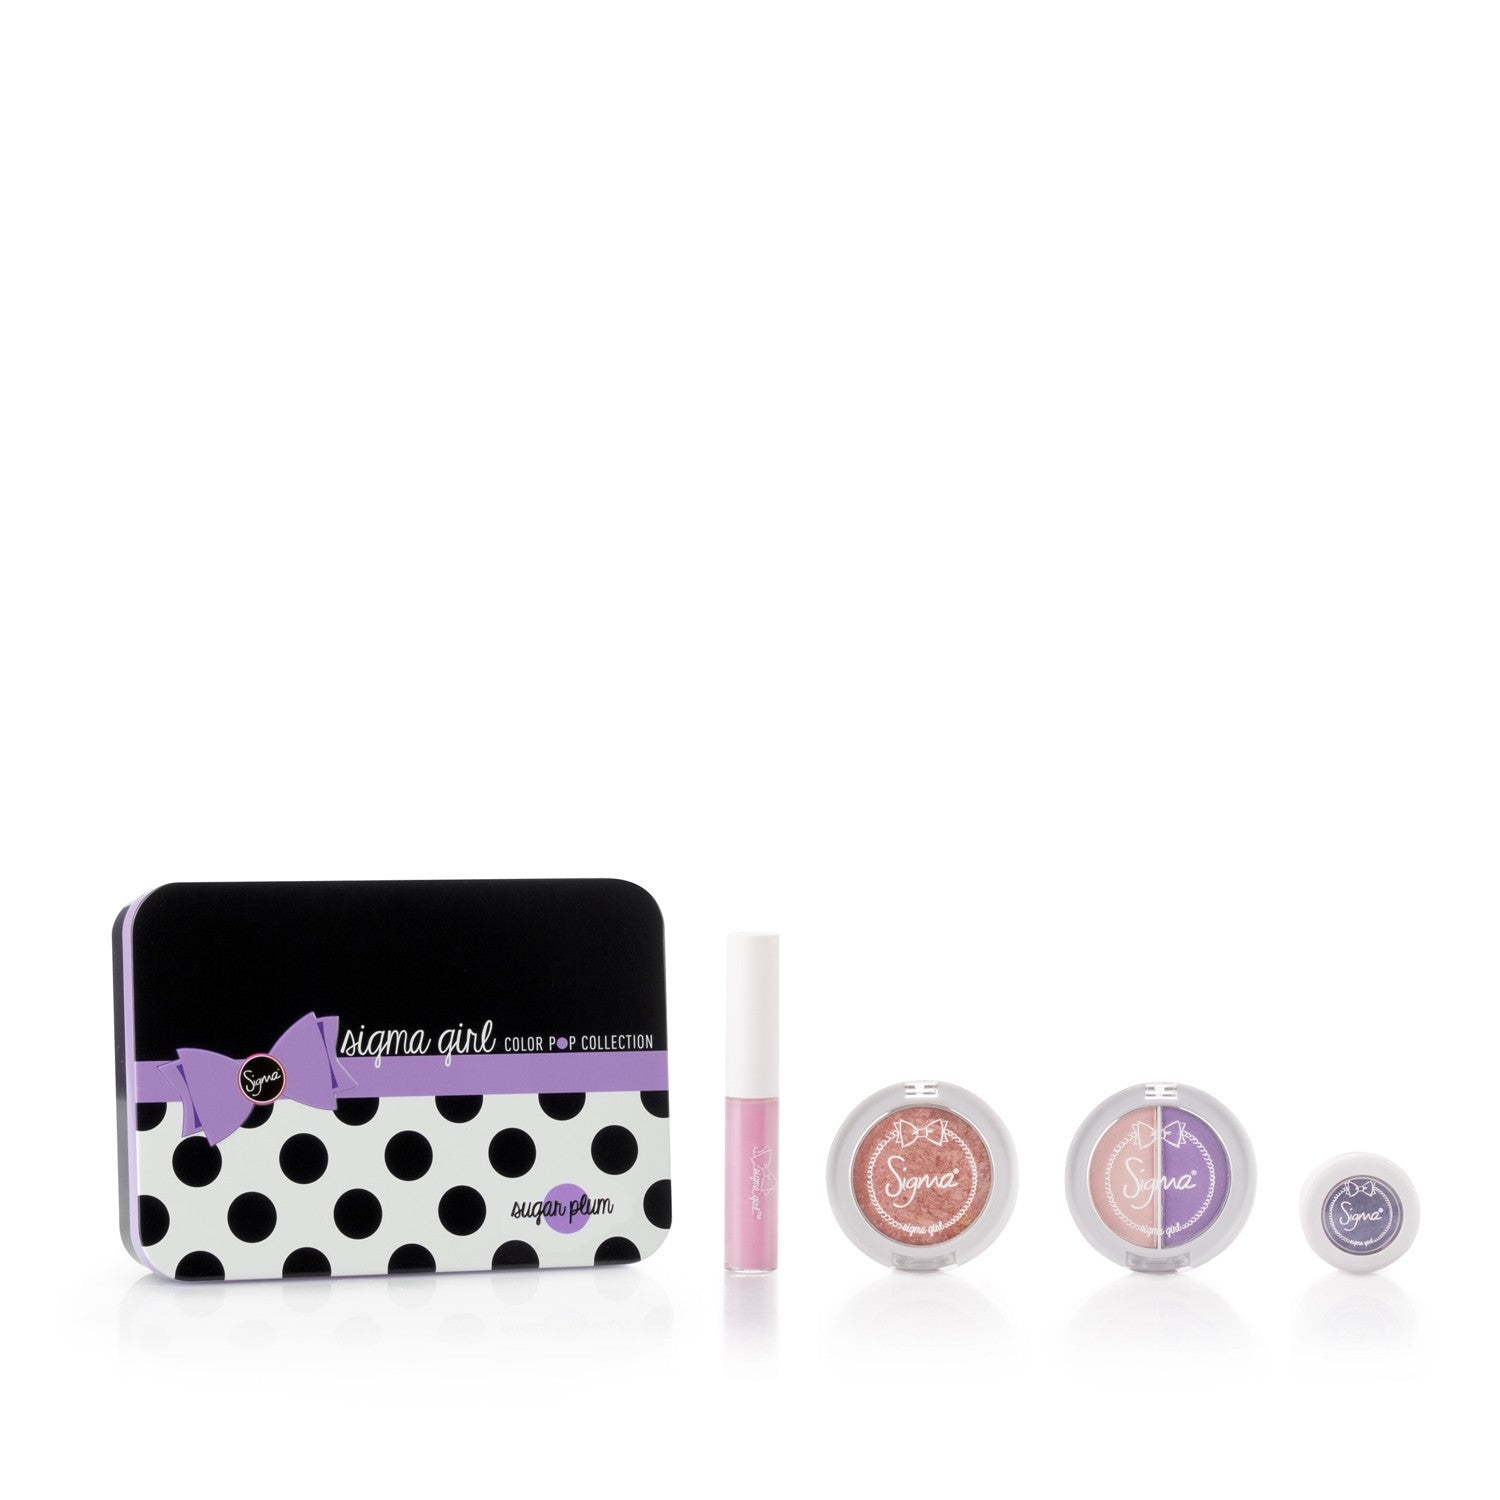 Sigma Girl Color Pop Makeup & Brush Set - Sugar Plum